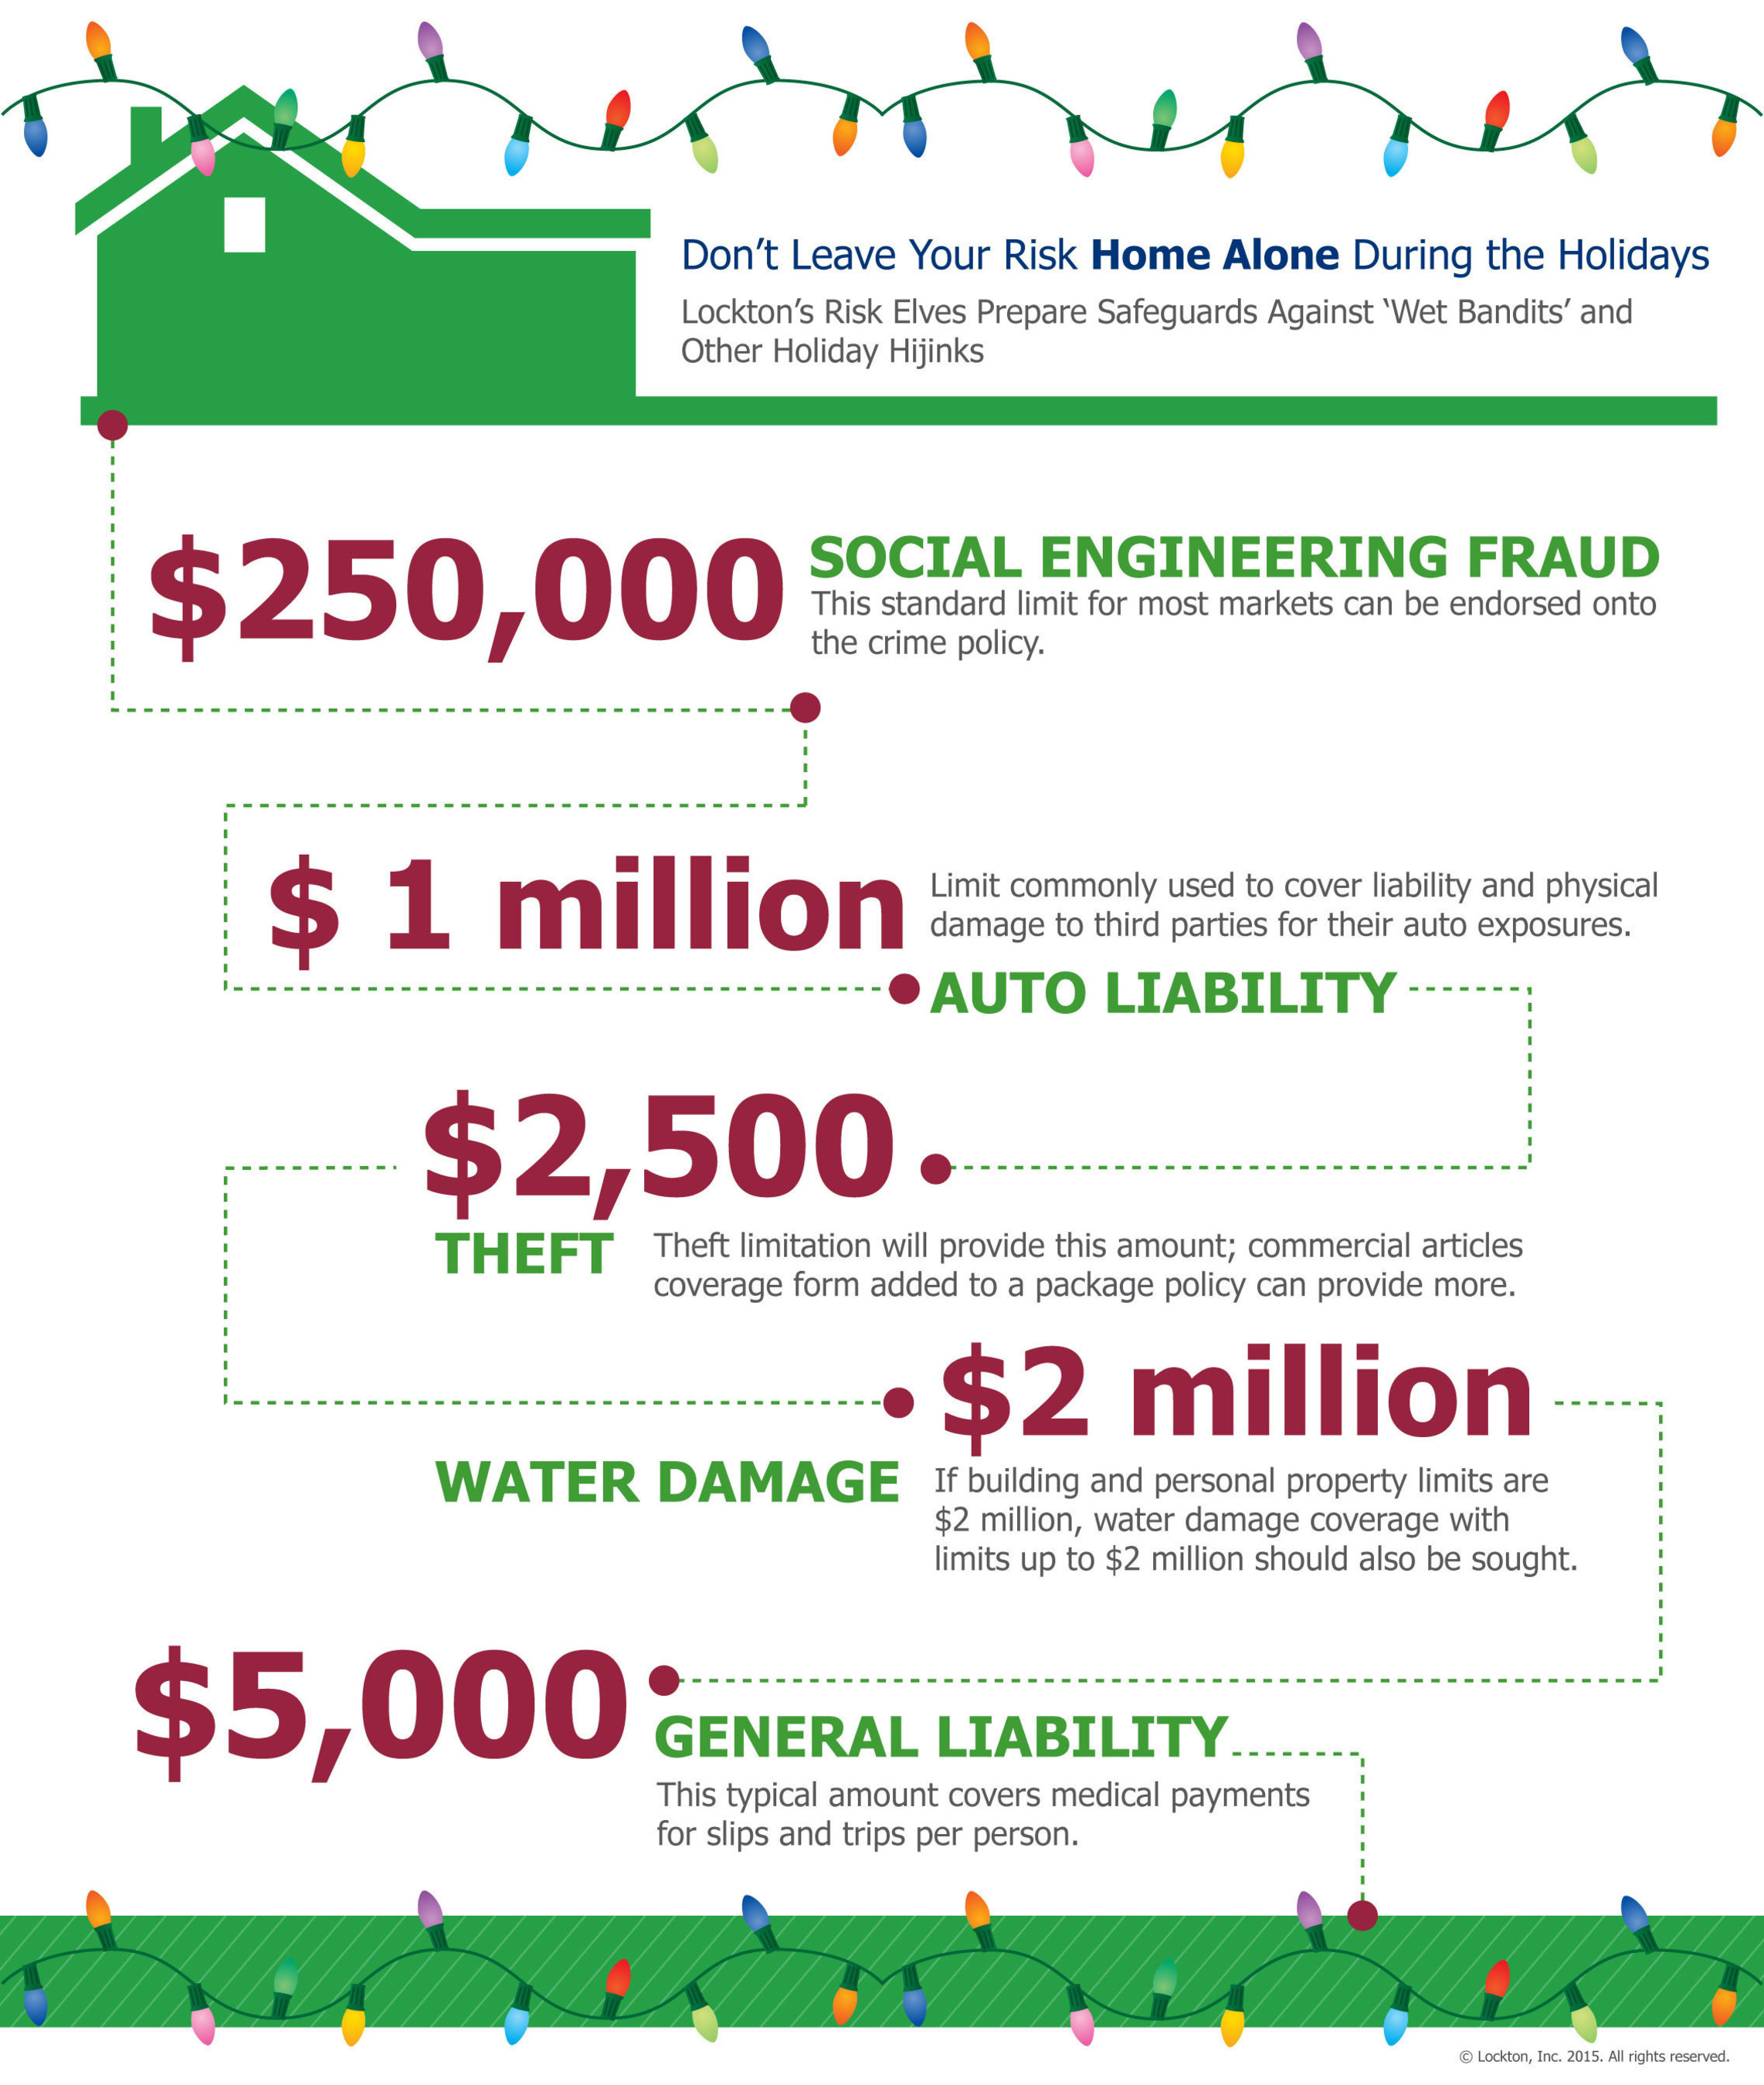 Lockton's recommended initial limits for coverage to ensure your risk is not left 'home alone' ...